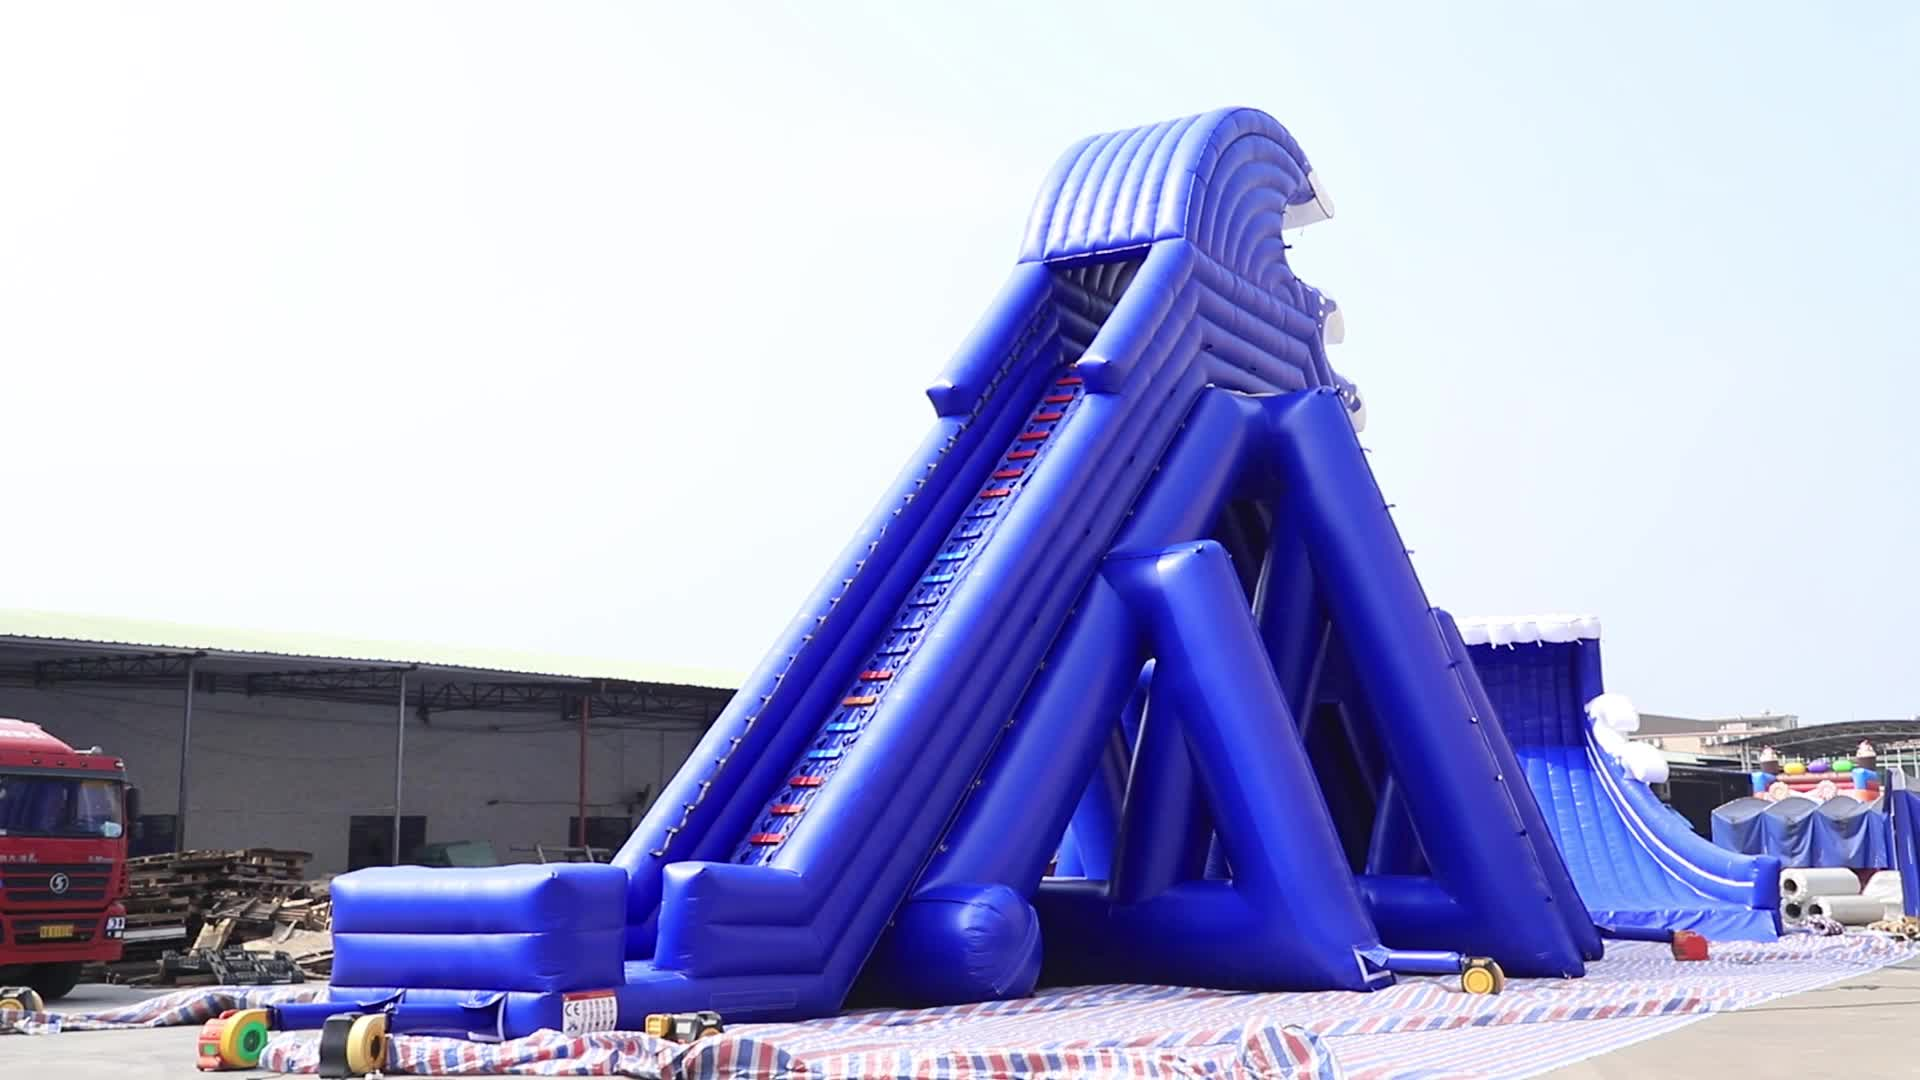 Professional TUV factory giant inflatable water slide, largest three lanes trippo slide